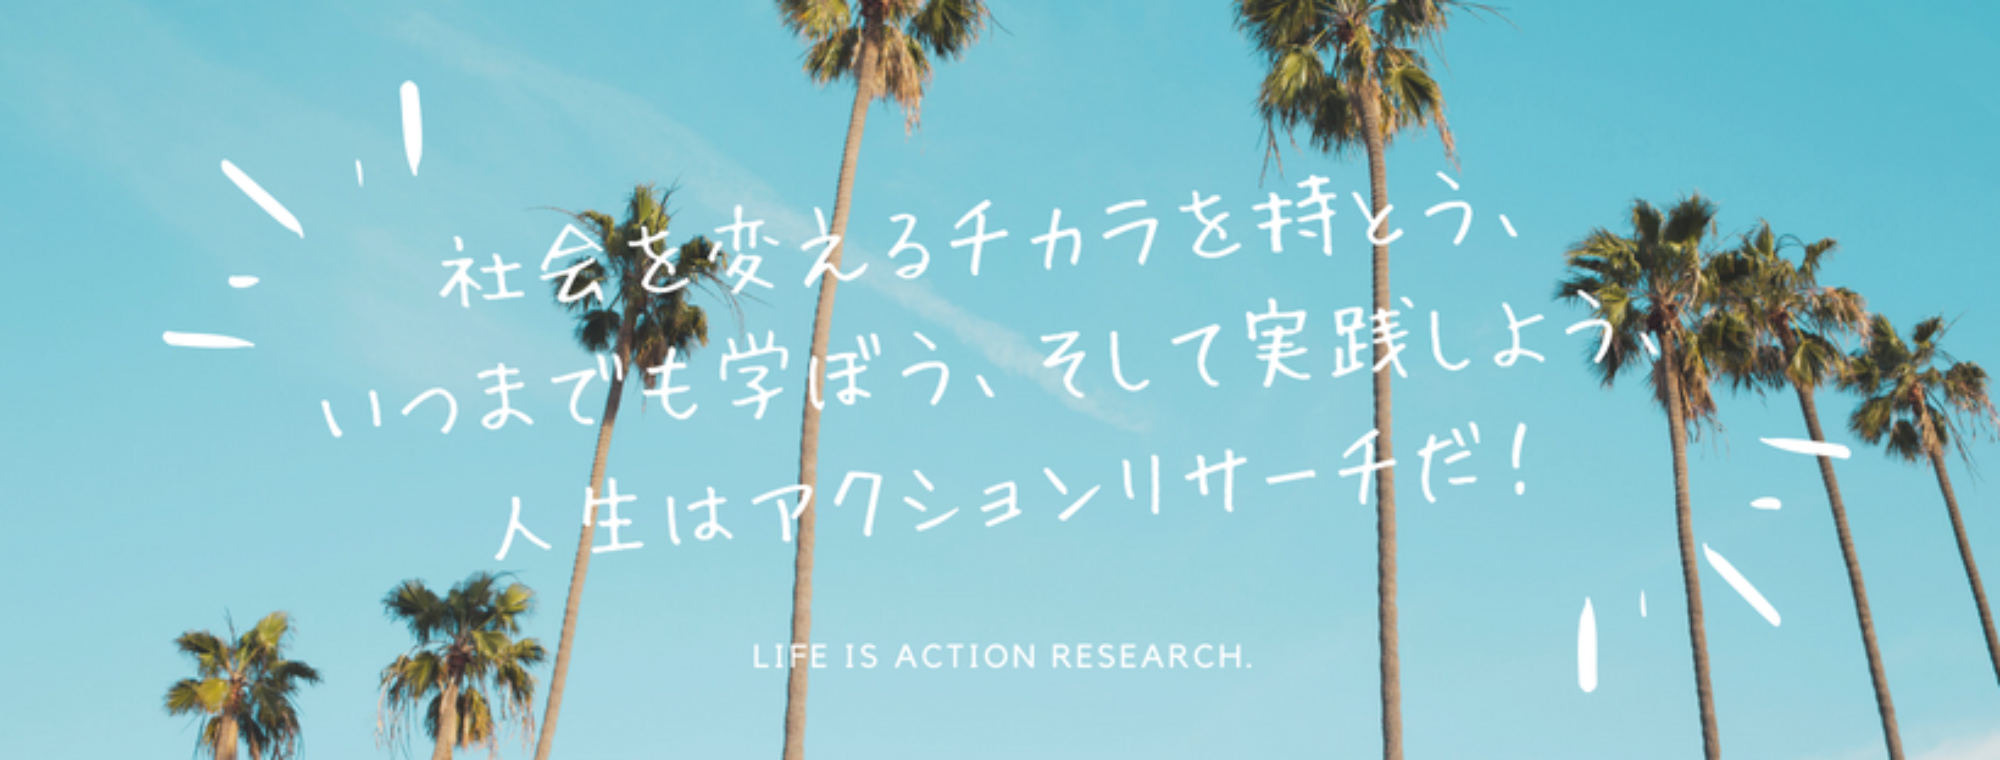 Life is Action Research.